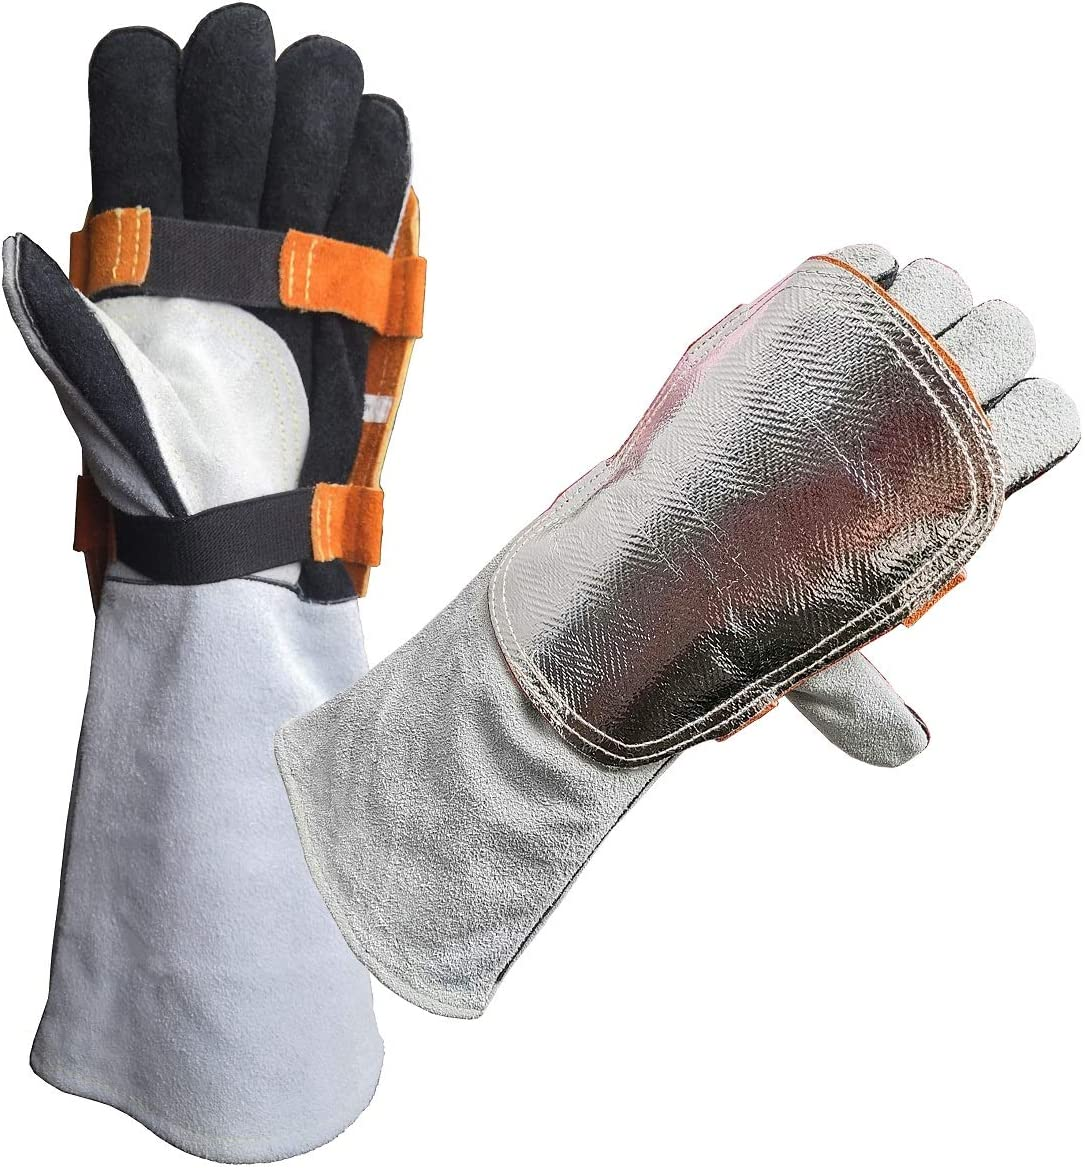 Leater Forge Welding Gloves with 2pcs Over item handling Today's only for He Pad Back Aluminized